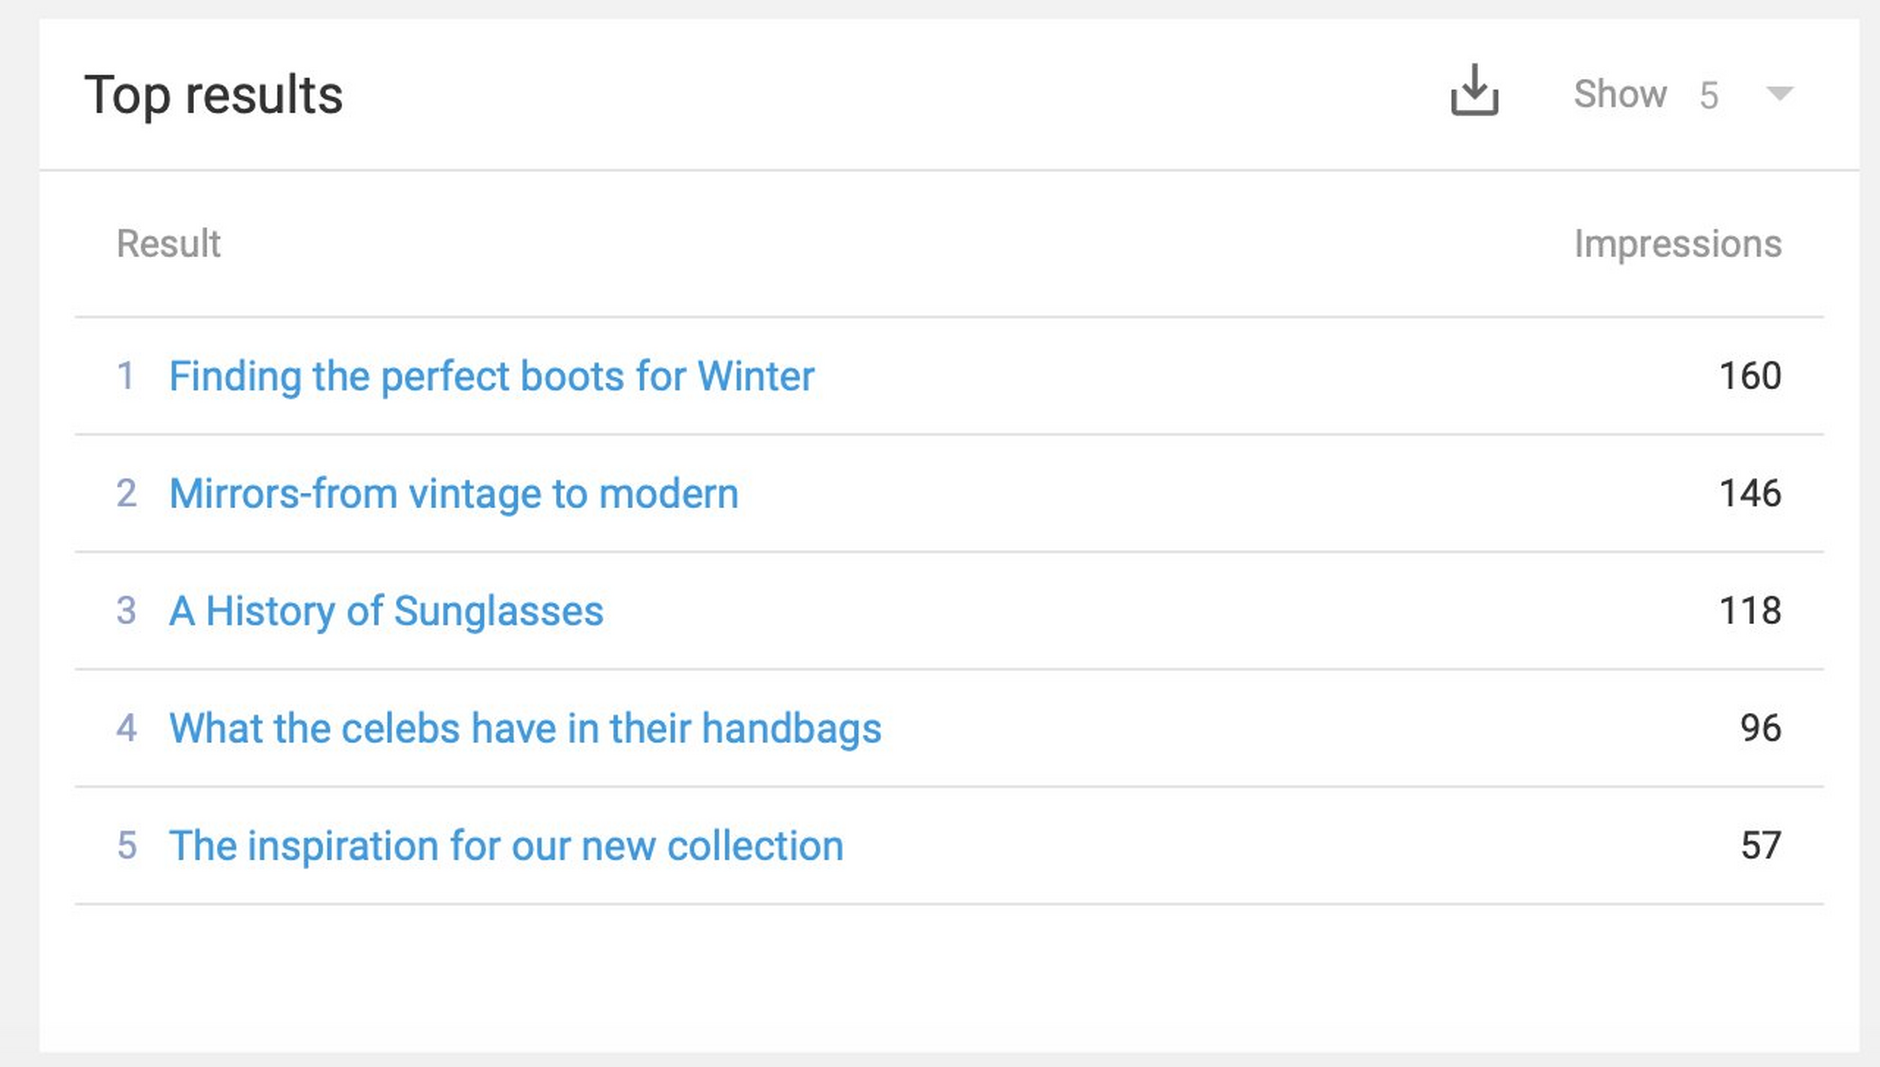 The top results widget shows the most commonly returned results across all searches